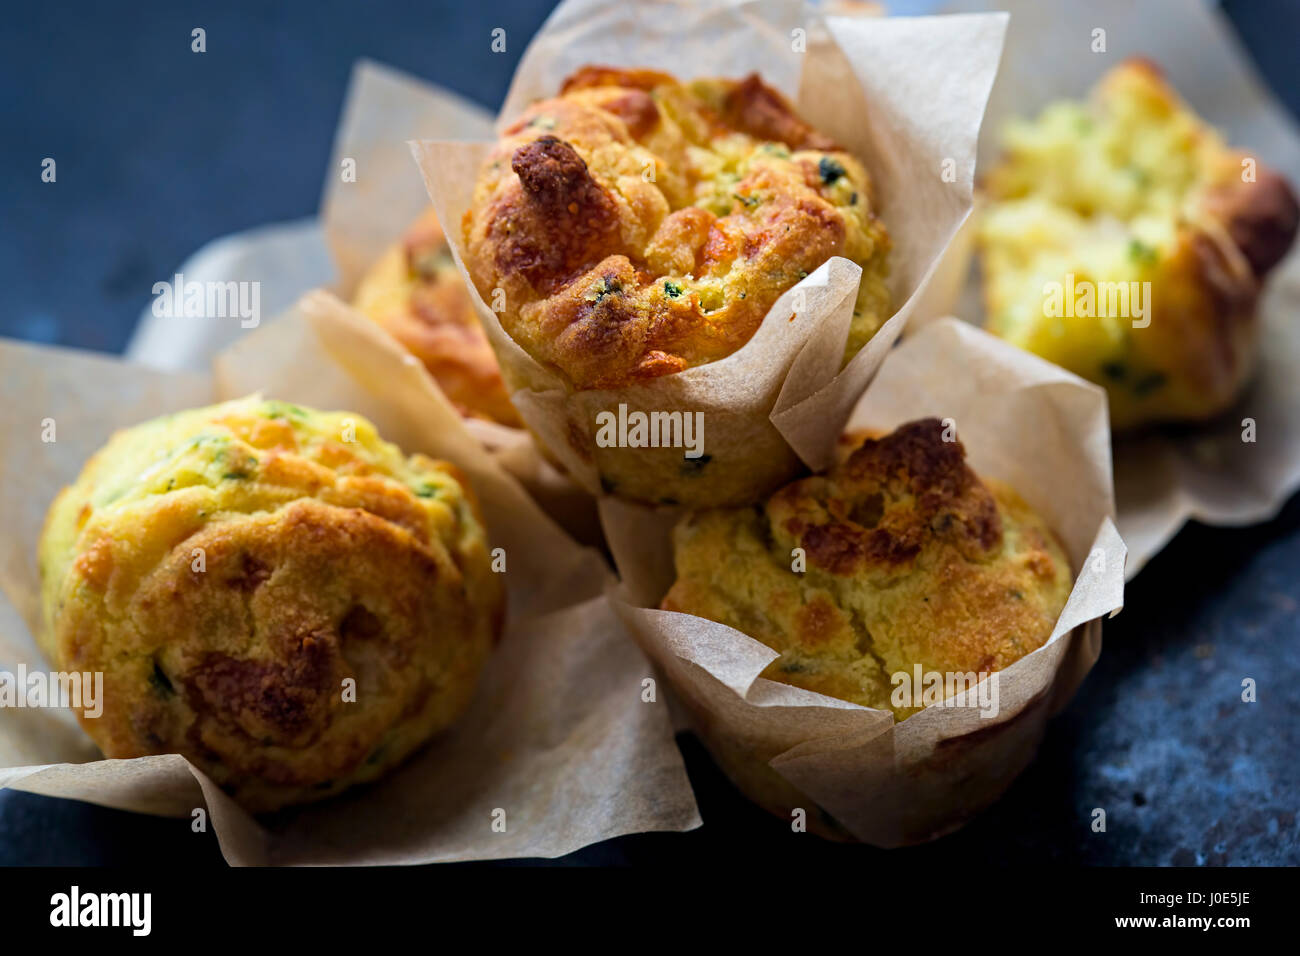 Onion and cheese muffins - Stock Image